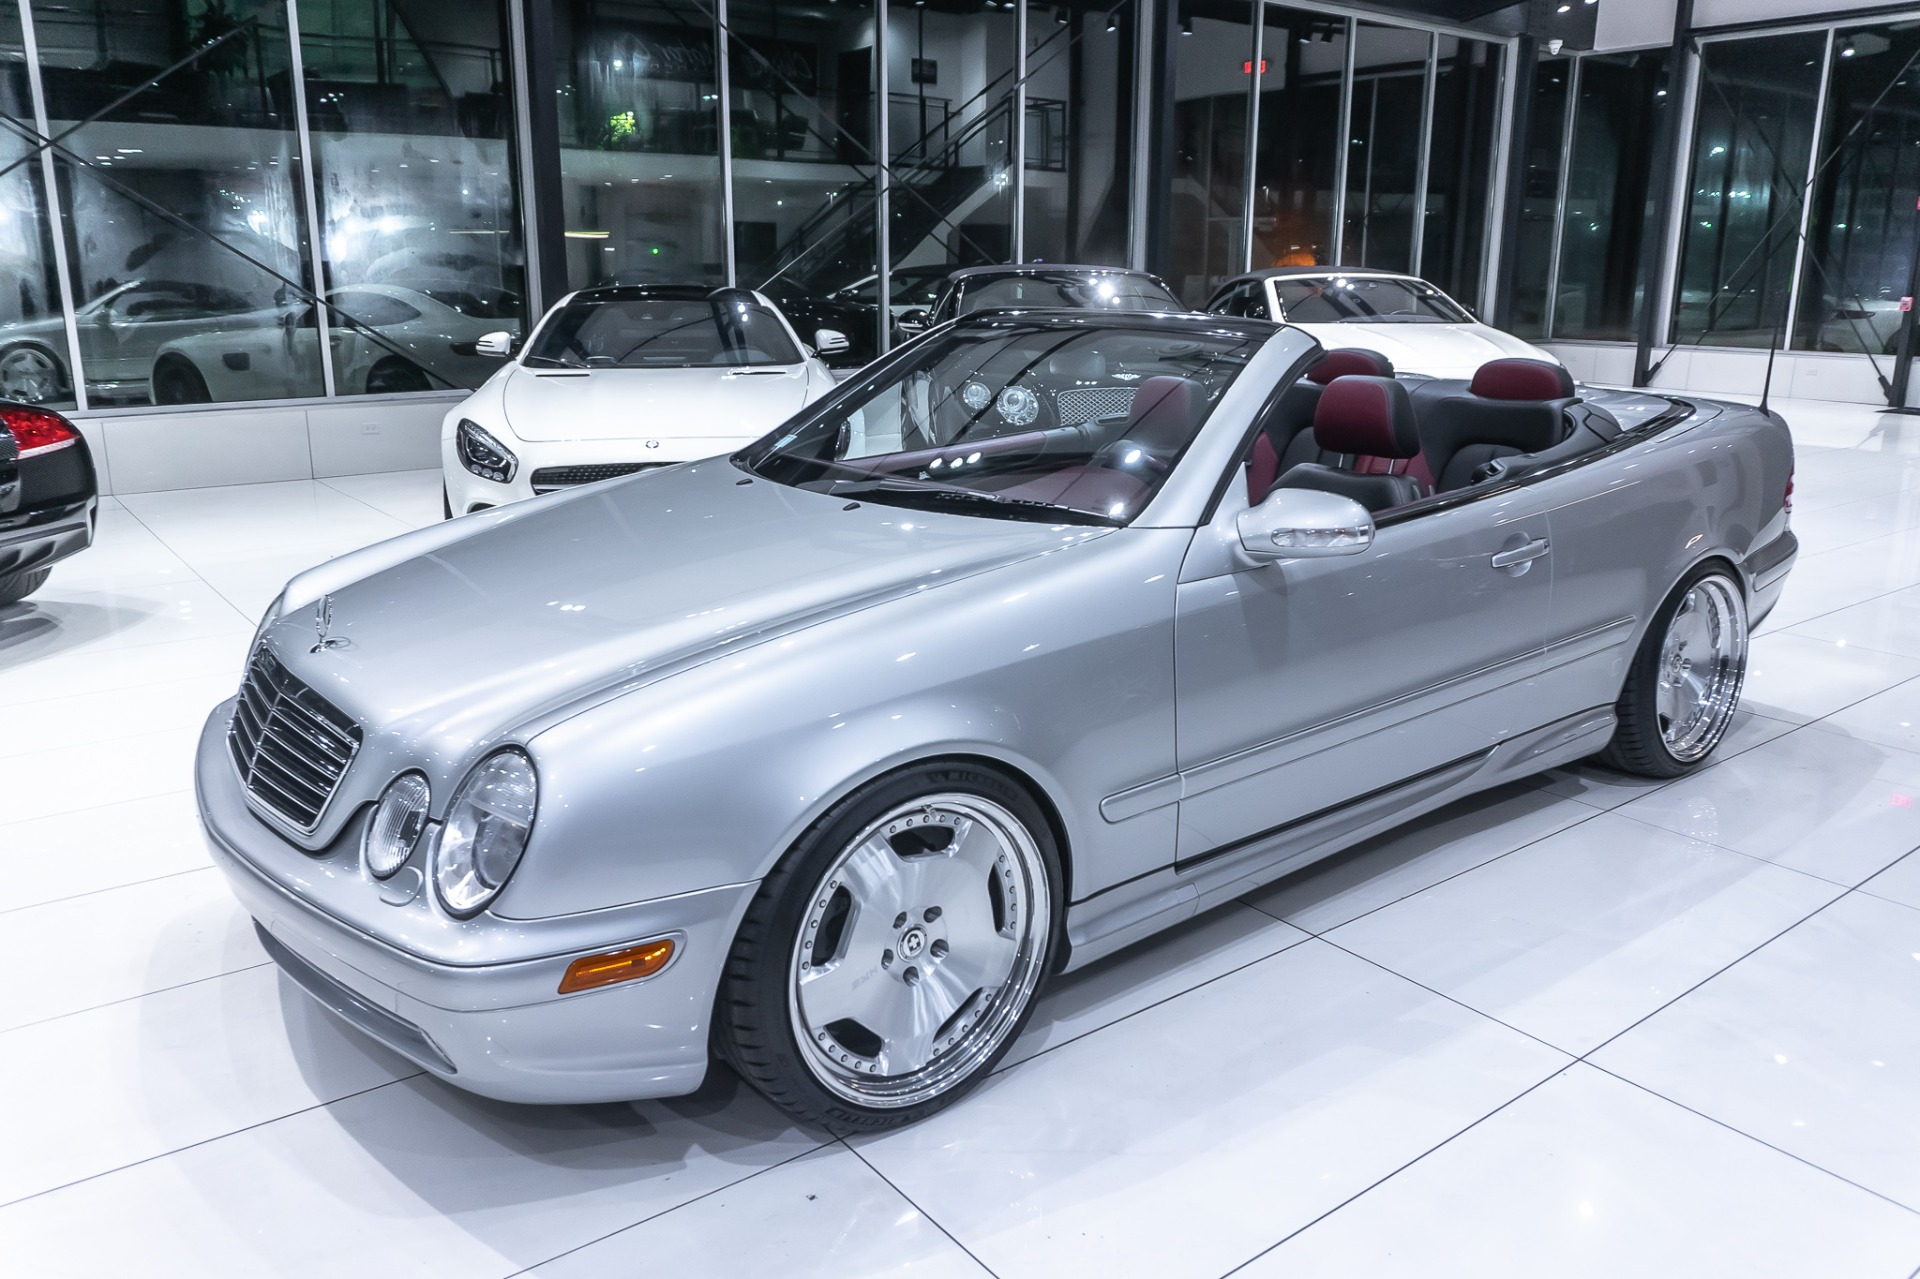 Used-2001-Mercedes-Benz-CLK430-CONVERTIBLE-ONLY-26K-MILES-LOWERED--1-OFF-HRE-WHEELS